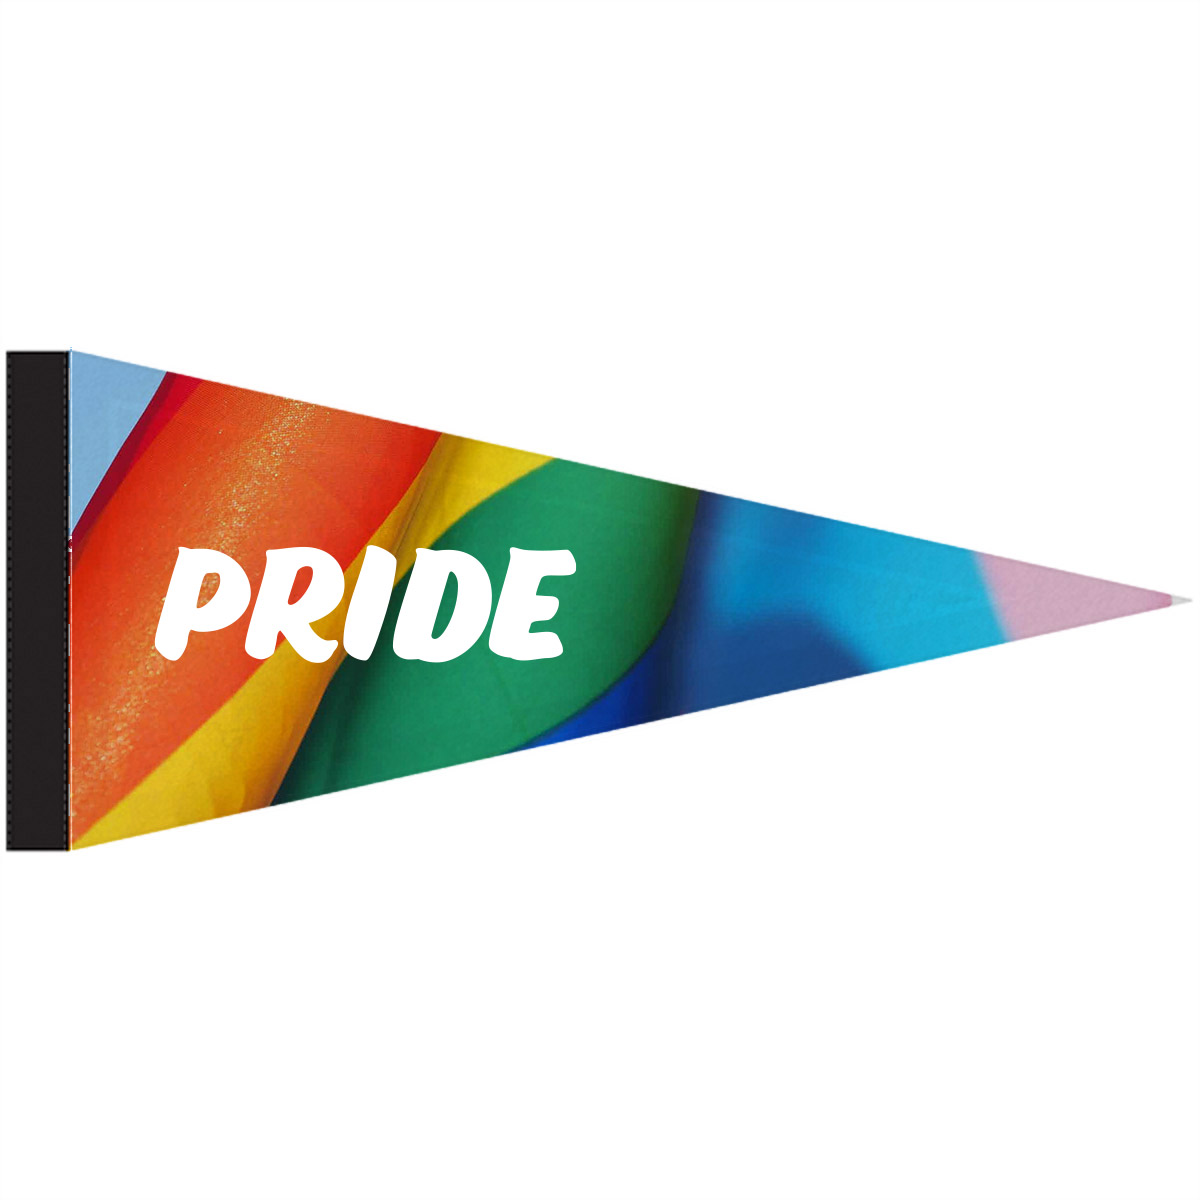 315509 felt pennant full color print one side